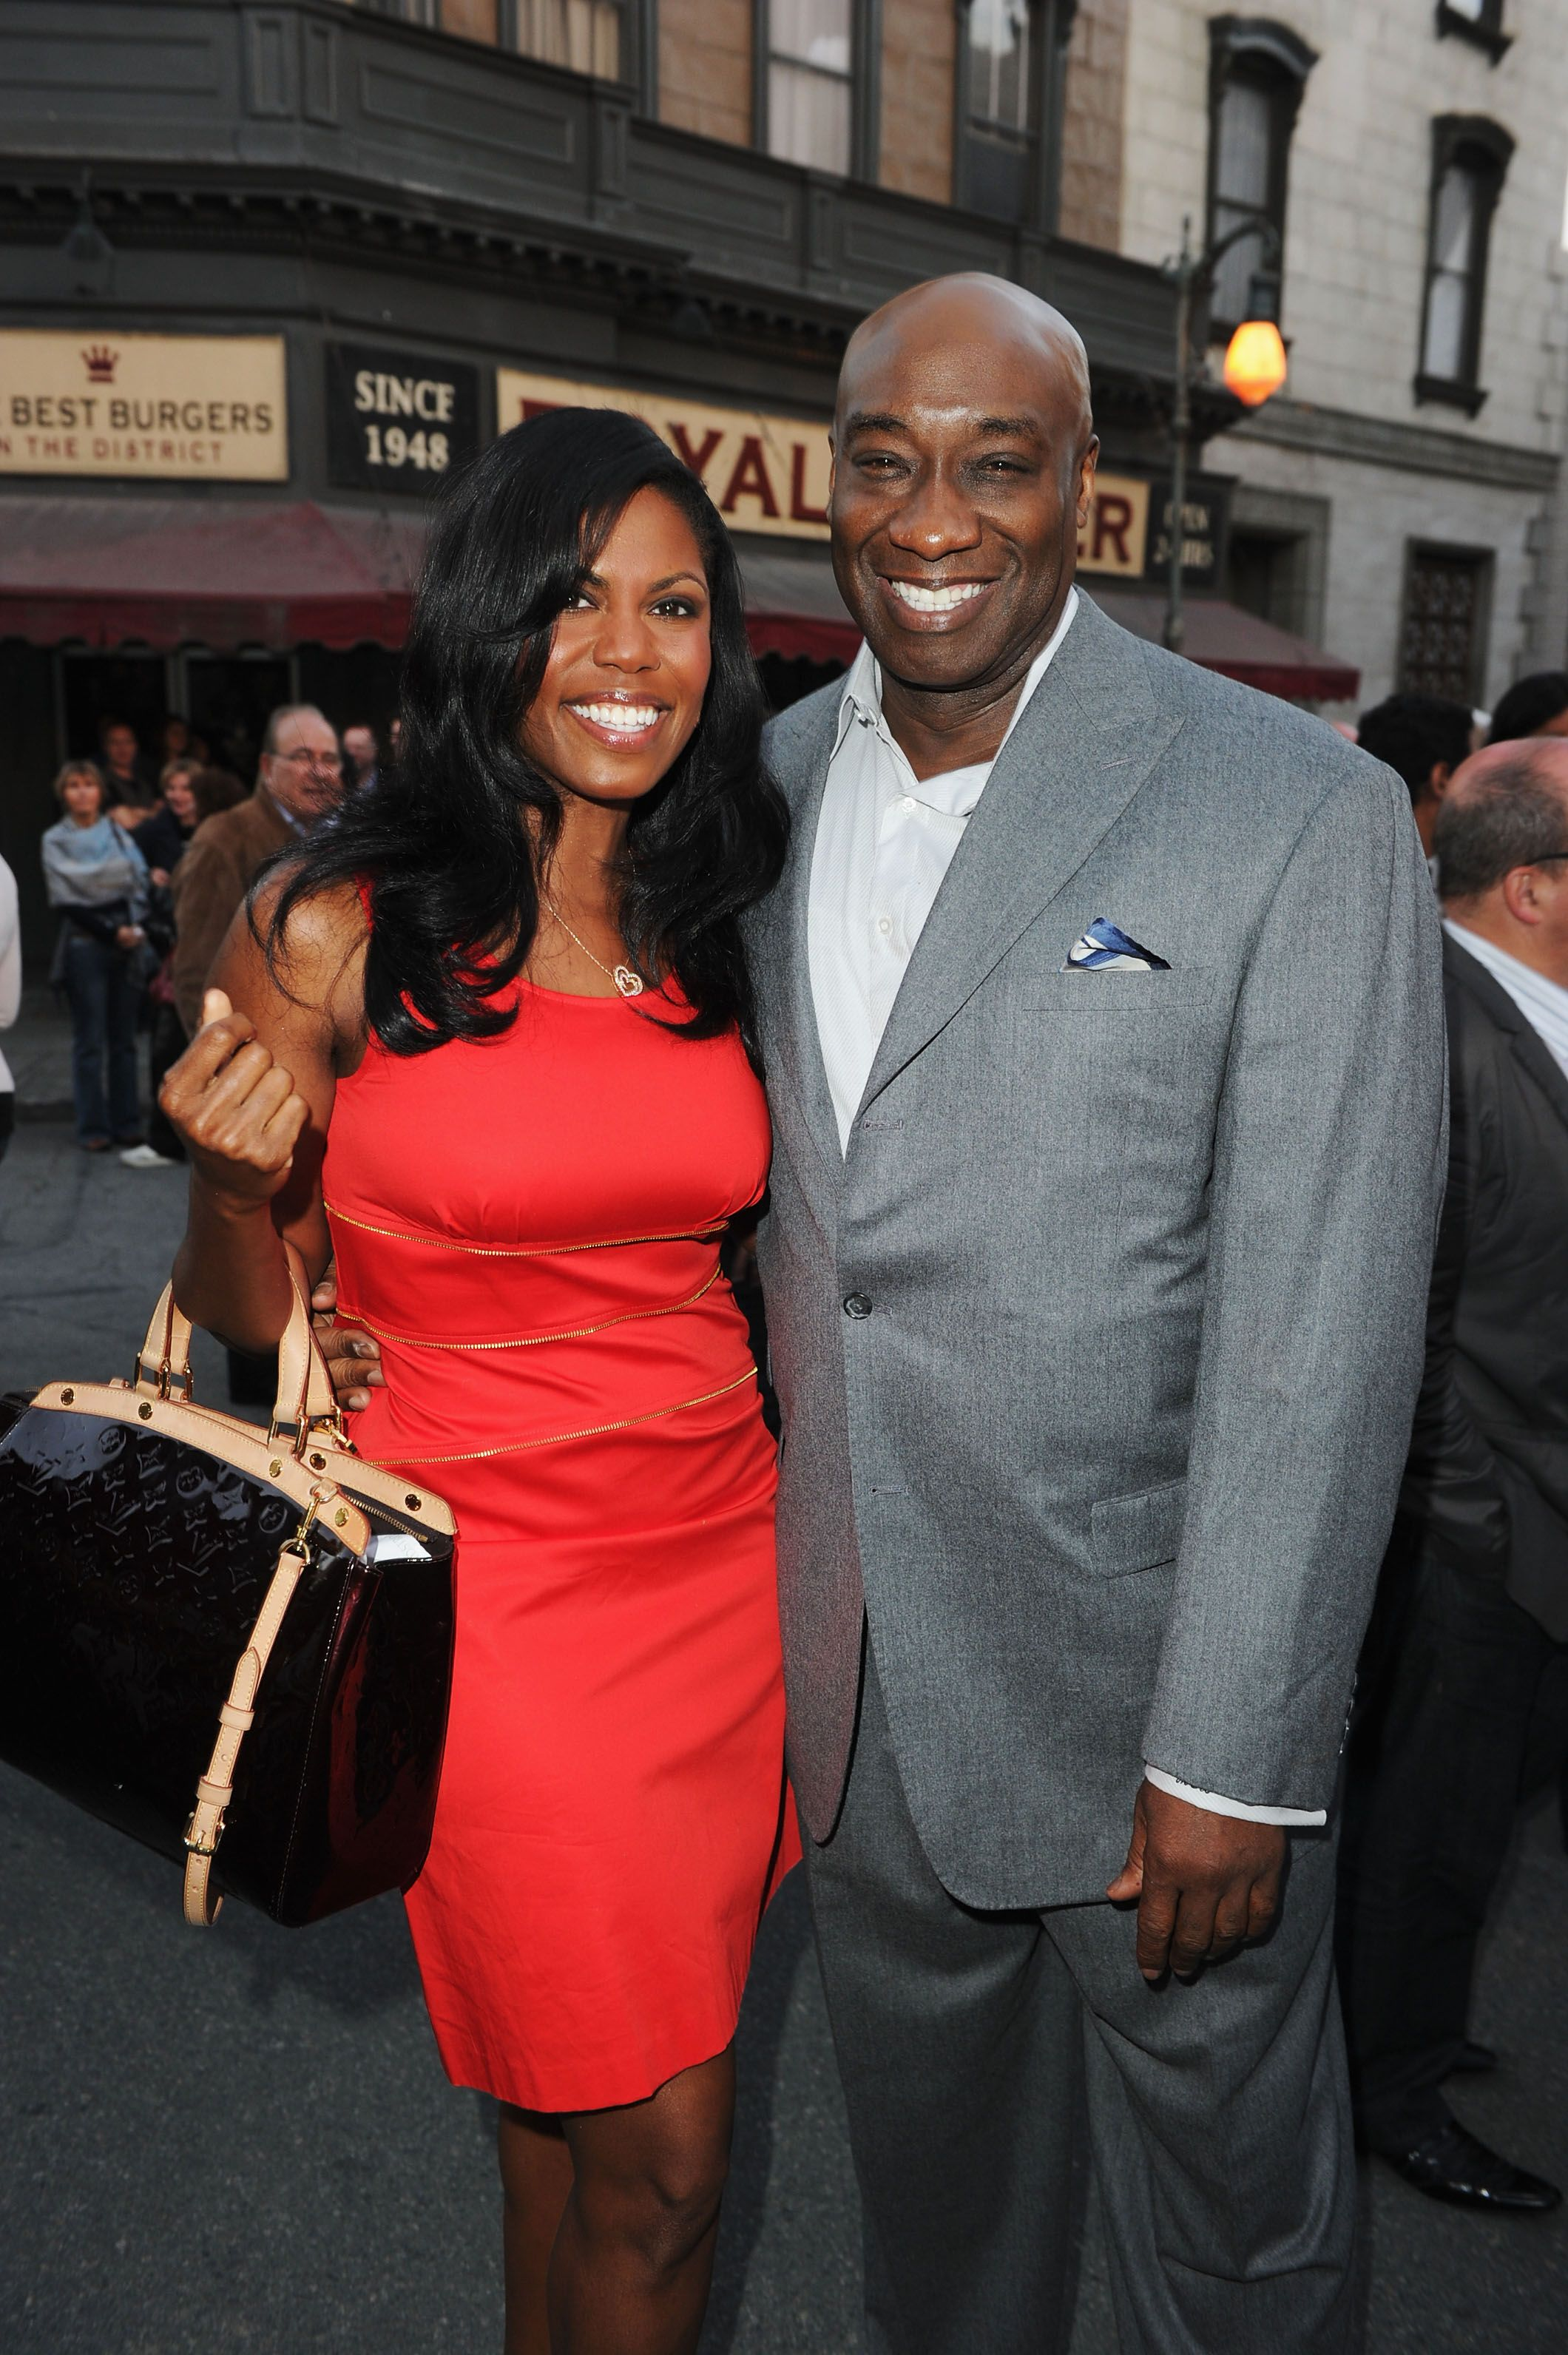 Michael Clarke Duncan embraces Omarosa Manigault on May 26, 2011, in Century City, California | Source: Getty Images